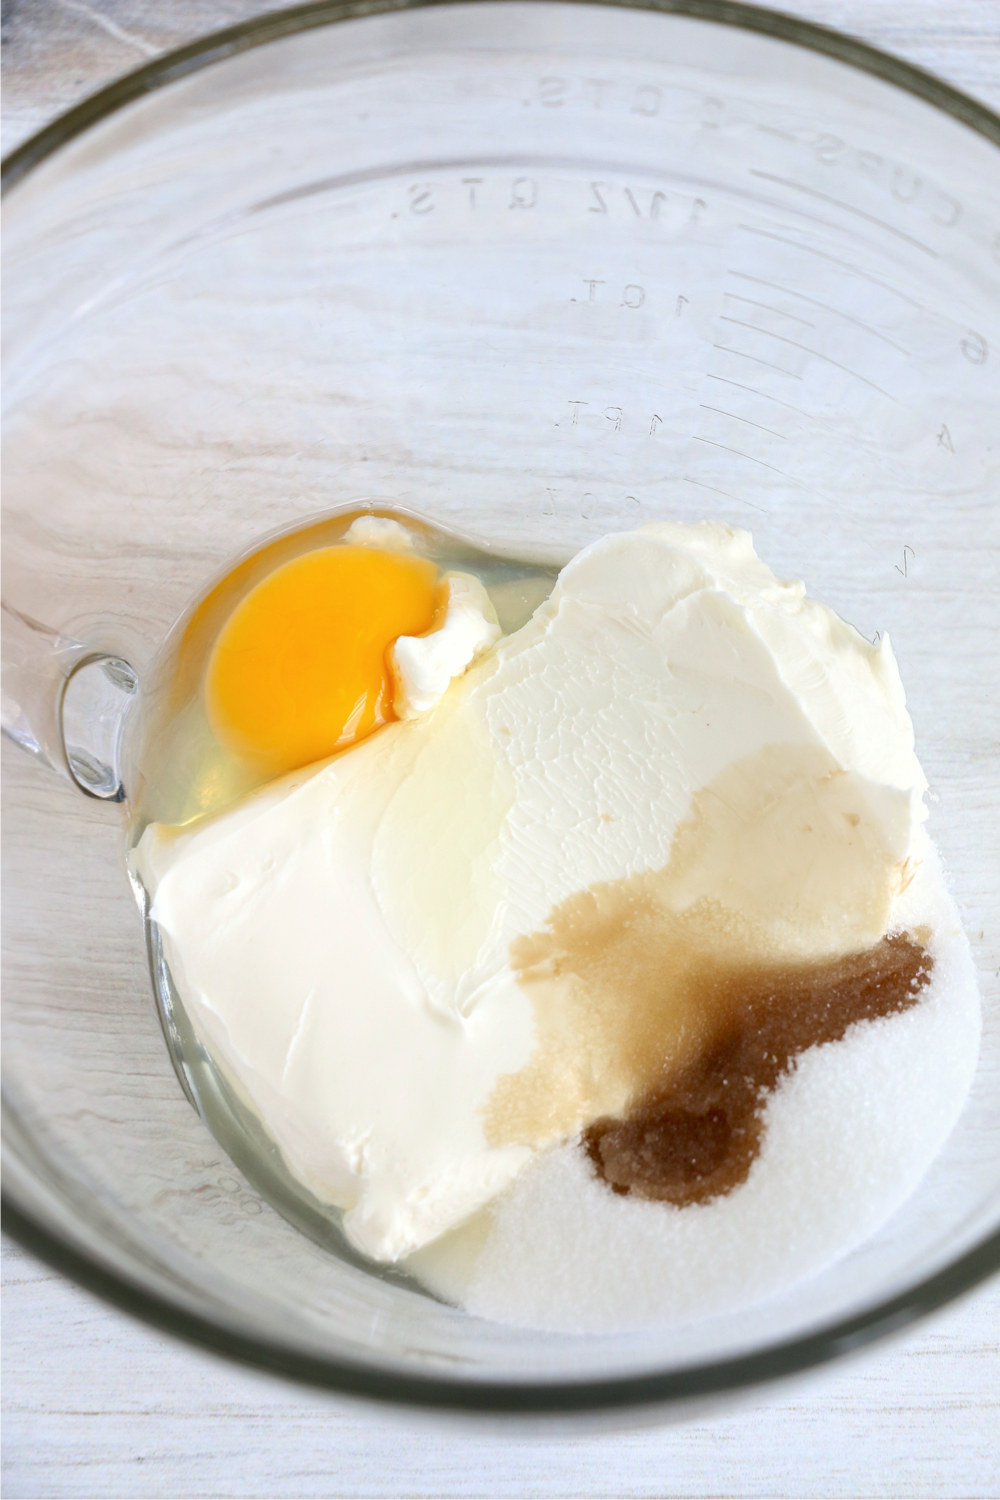 cream cheese, sugar, vanilla and an egg in a glass bowl